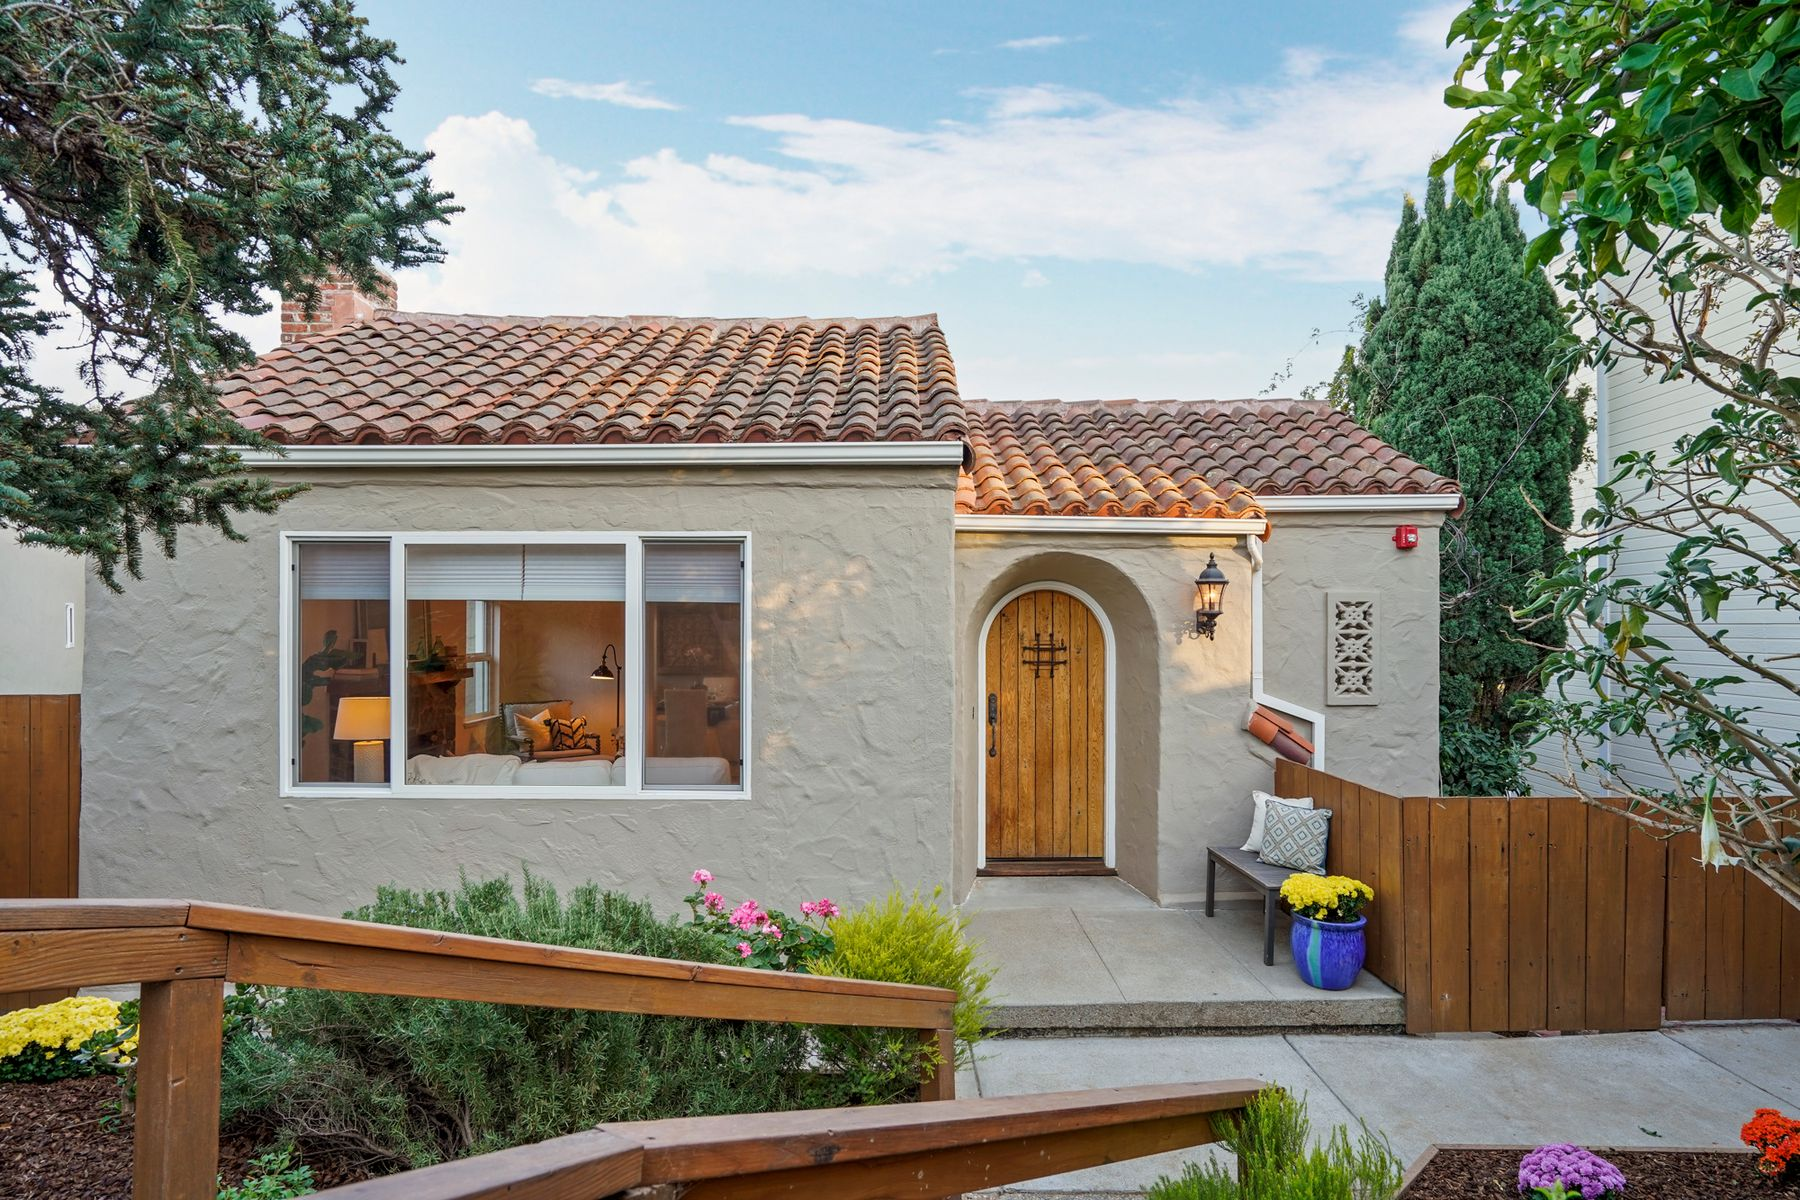 Single Family Homes for Sale at Old-World Charm With Modern Amenities 2620 Ponce Ave Belmont, California 94002 United States